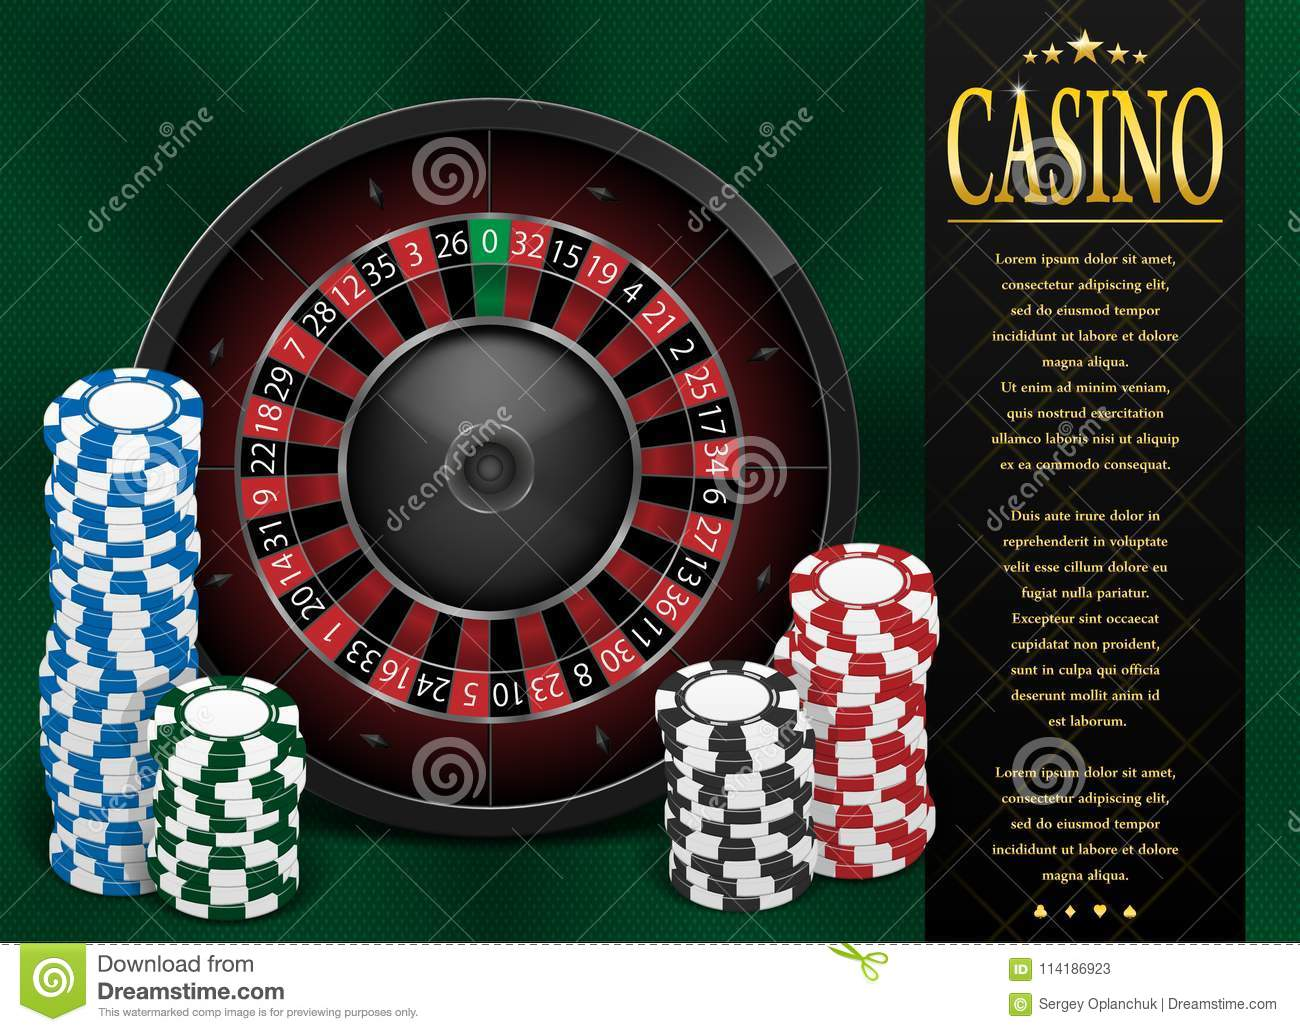 Casino Gambling poster or flyer design. Casino banner template with Roulette Wheel isolated on green background. Playing